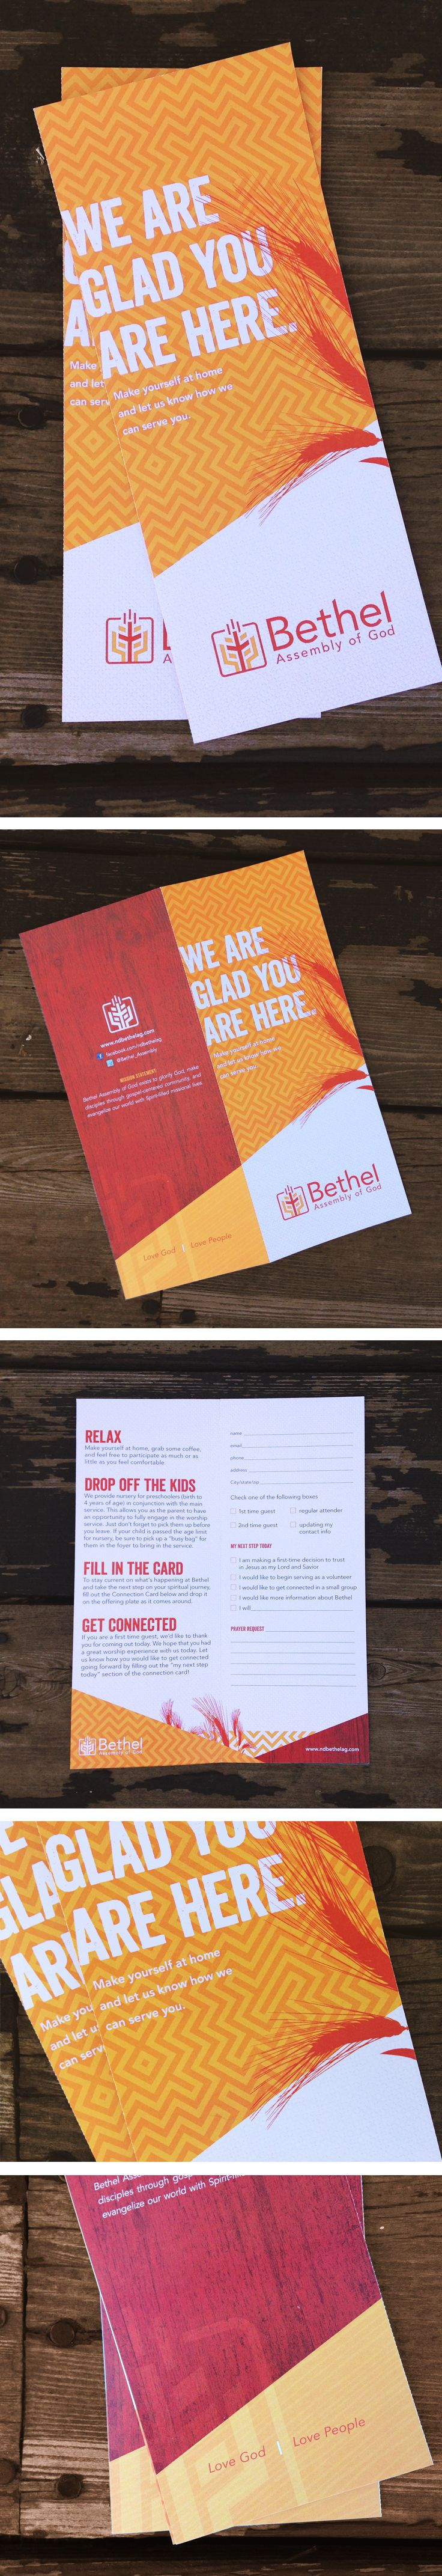 Connection card for a small North Dakotan church. #design #church #wheat